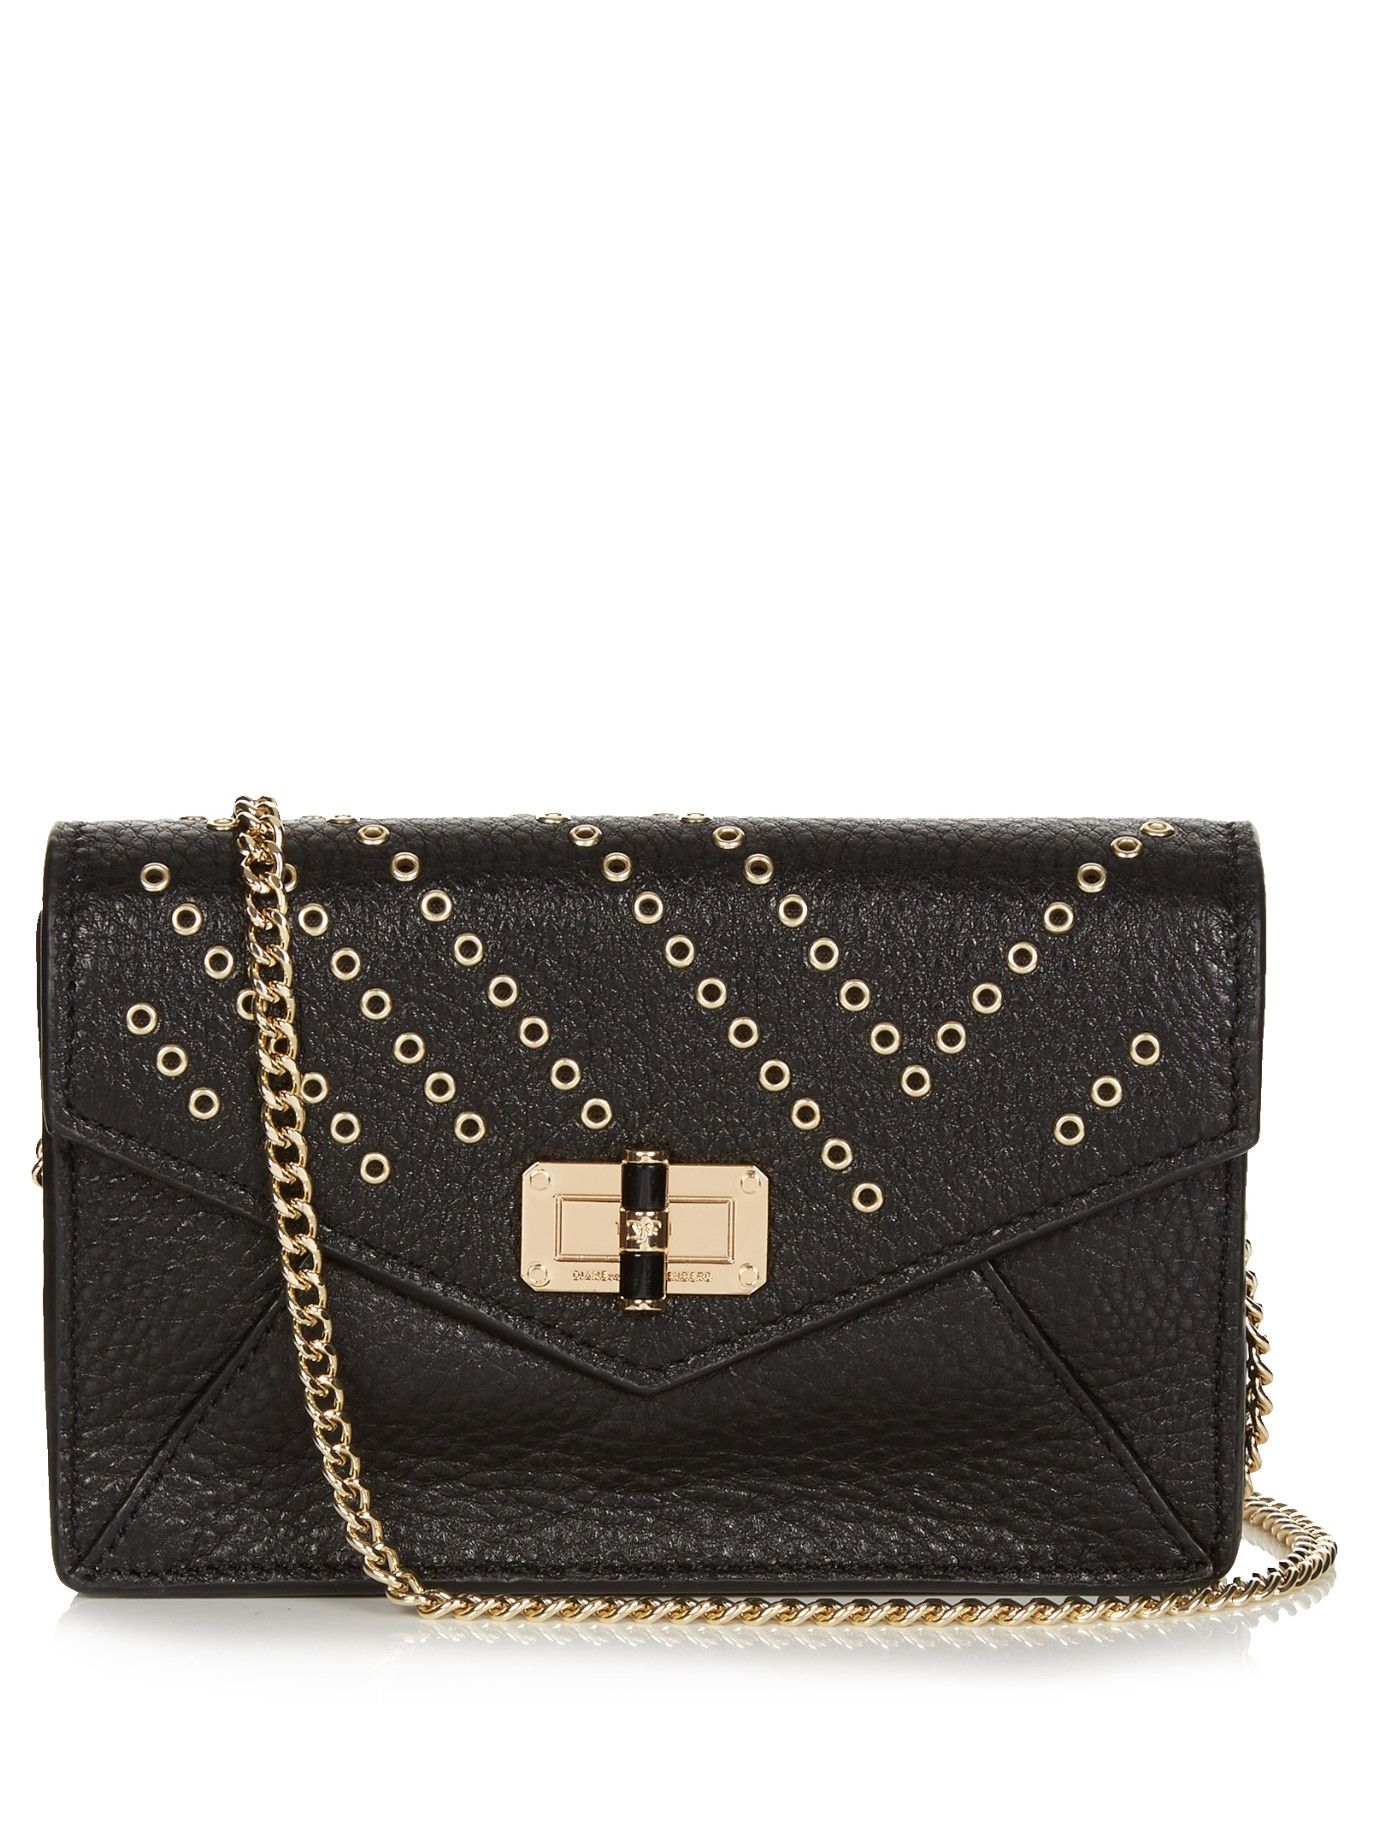 110e4ad04de8f 440 Gallery Bitsy cross-body bag | Diane Von Furstenberg |  MATCHESFASHION.COM UK